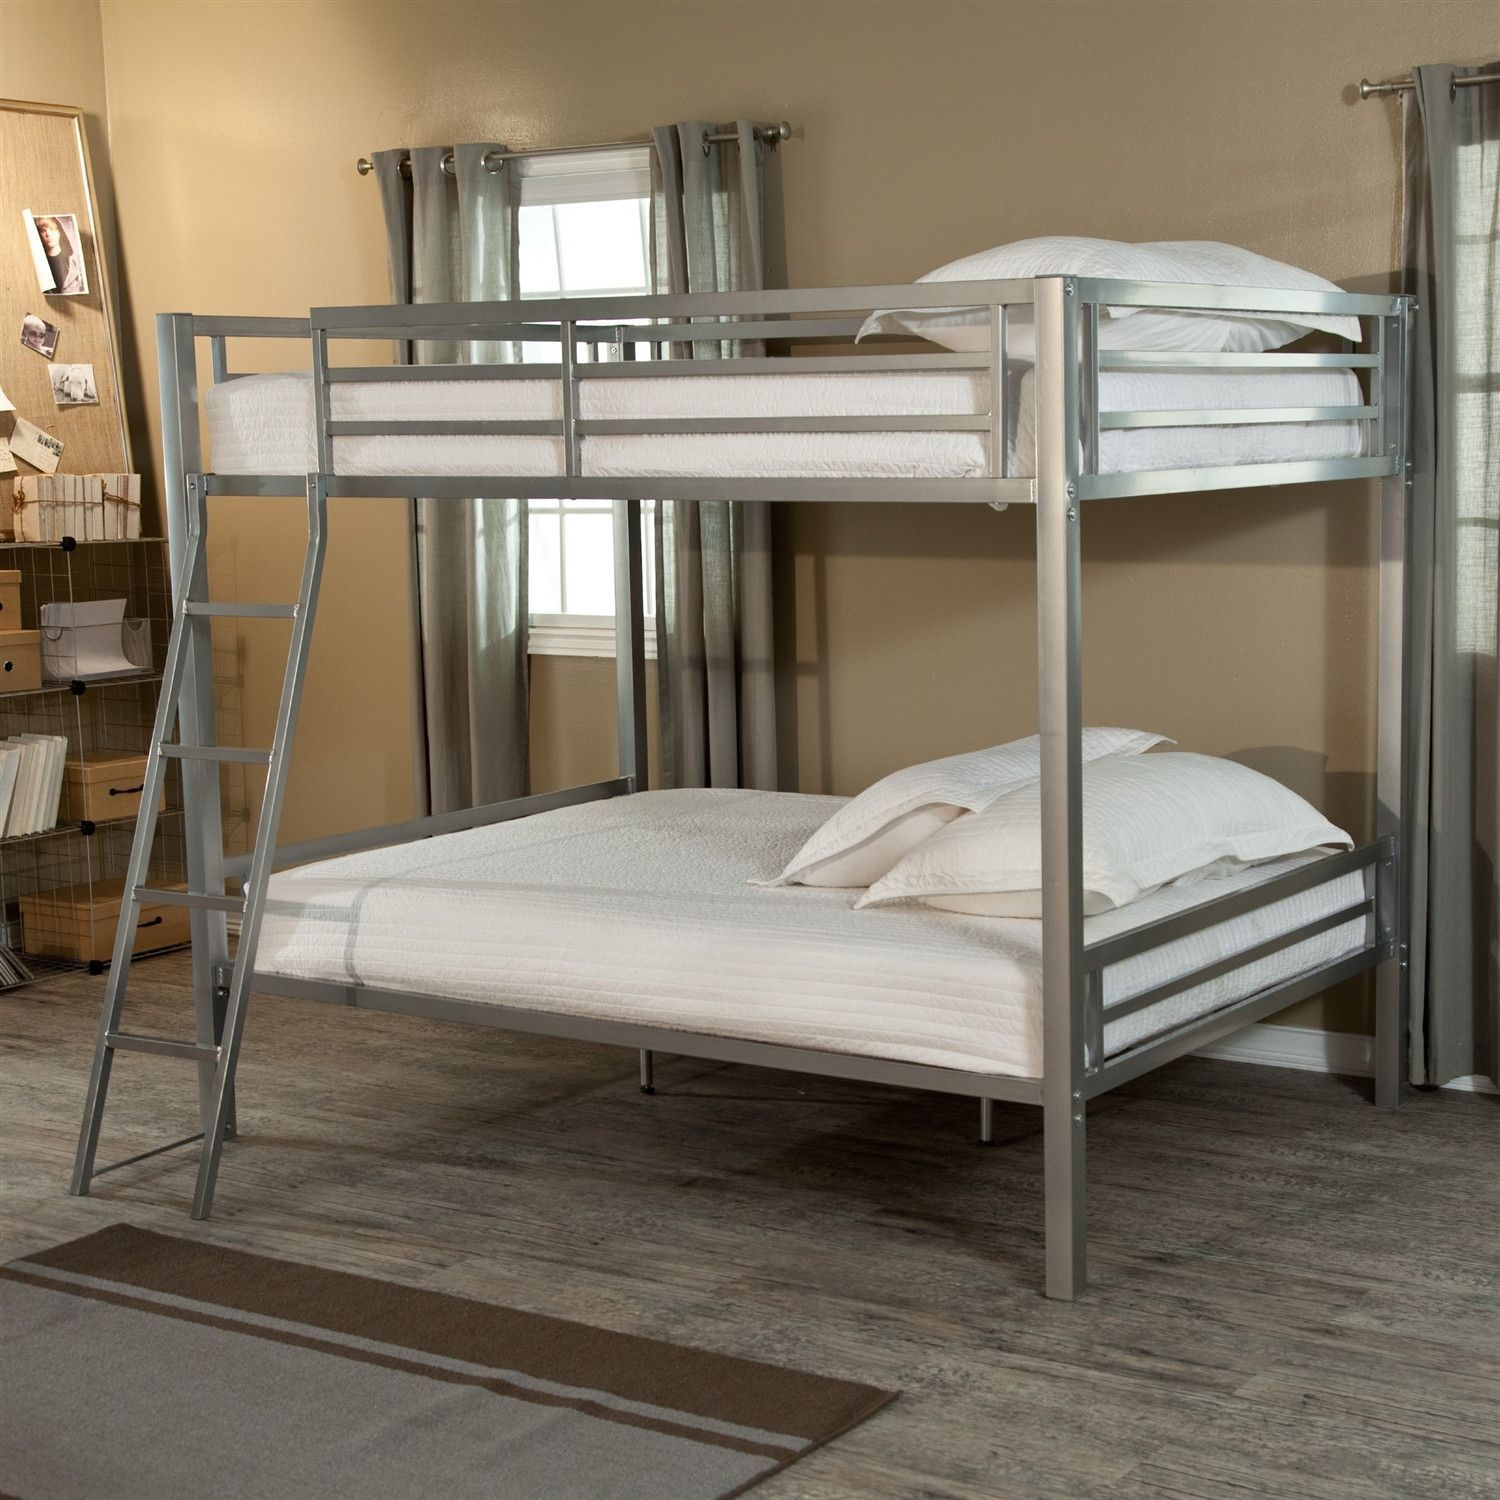 Best Full Over Full Size Bunk Bed With Ladder In Silver Metal 400 x 300